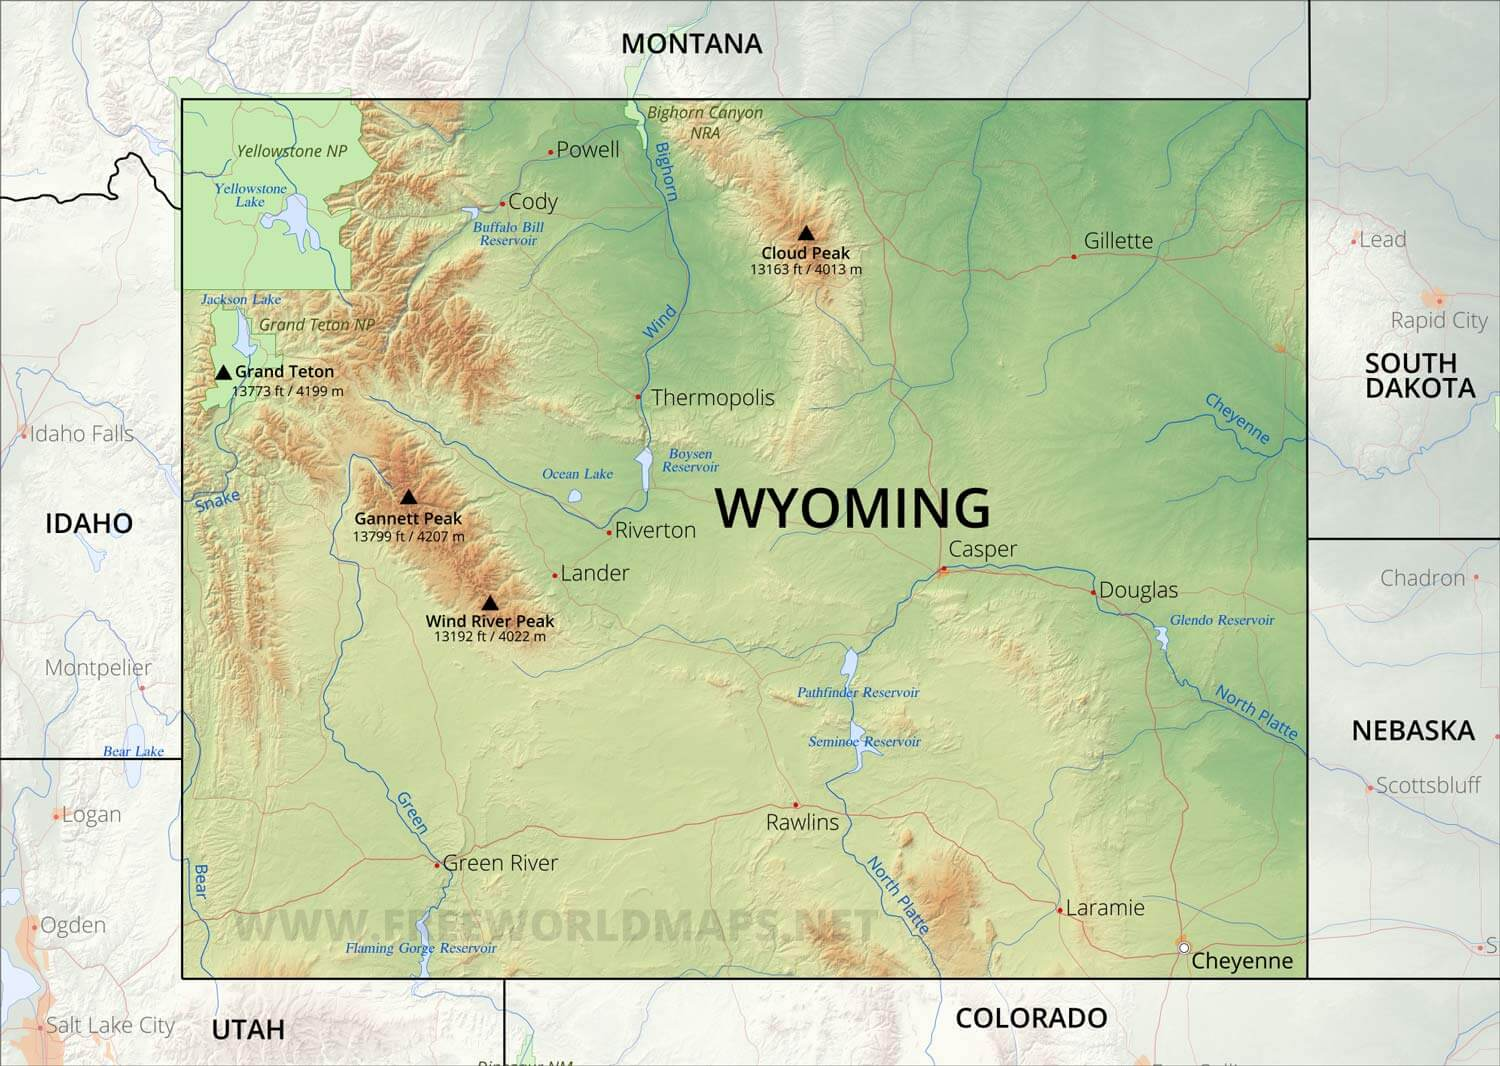 mountain view wyoming map Physical Map Of Wyoming mountain view wyoming map